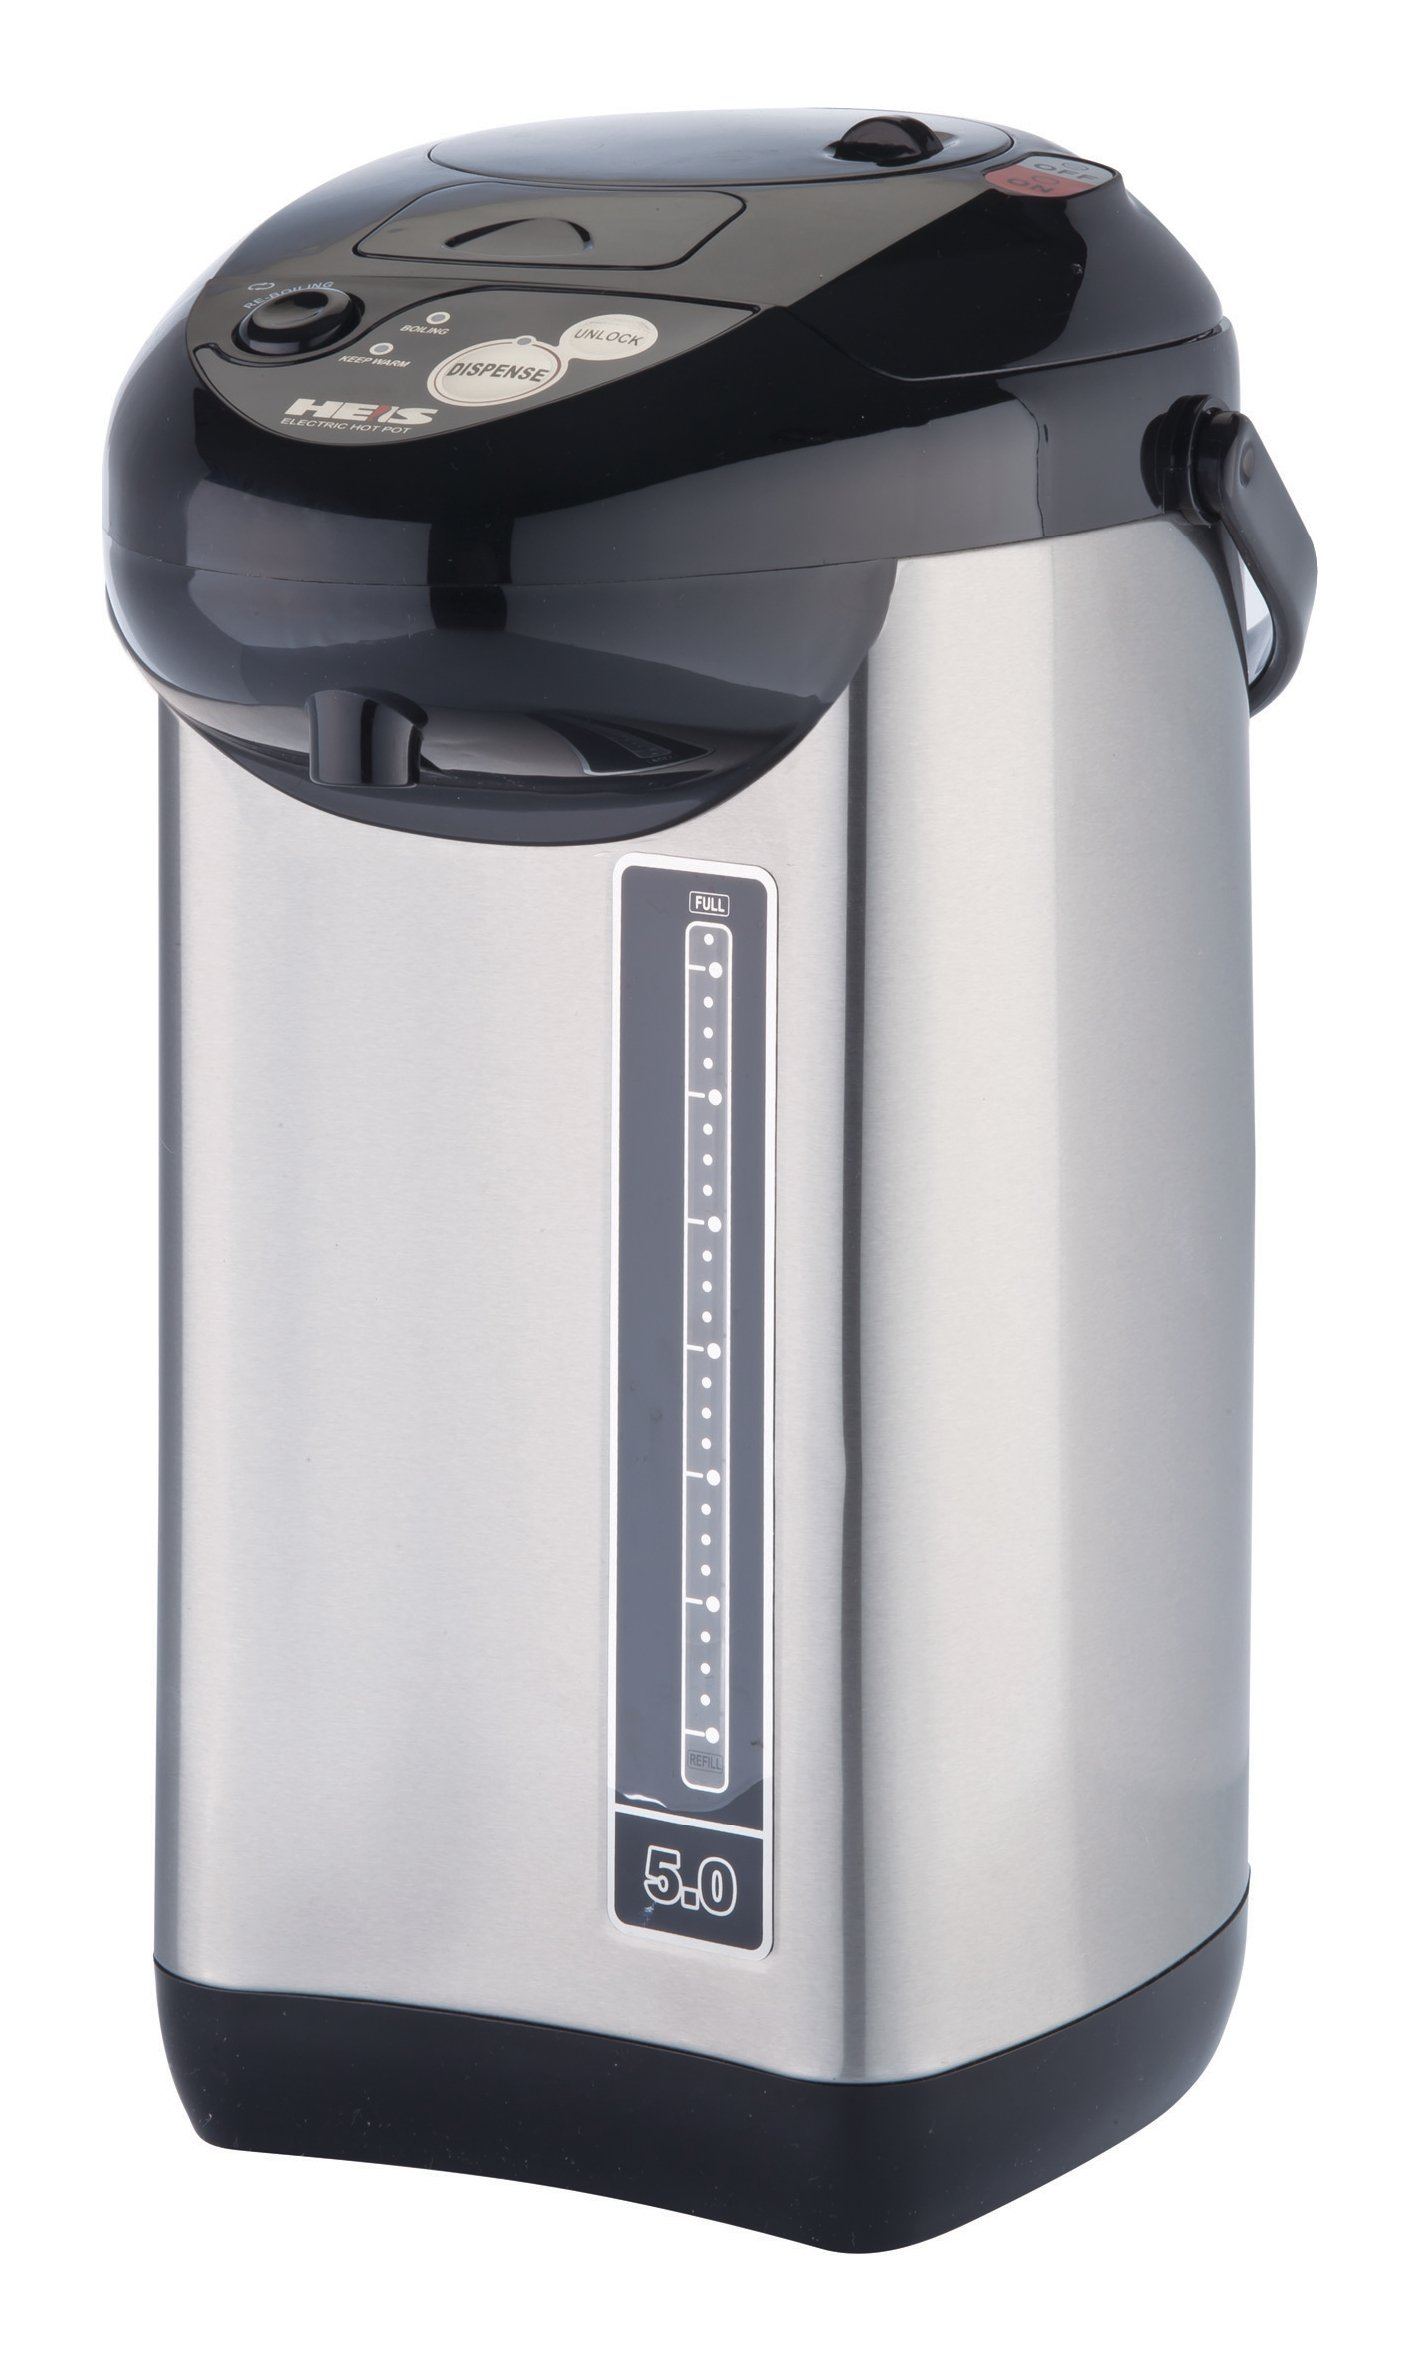 Pro Chef PC8100 5-Quart Hot Water urn, with Auto & Manuel Water Dispenser, Stainless Steel